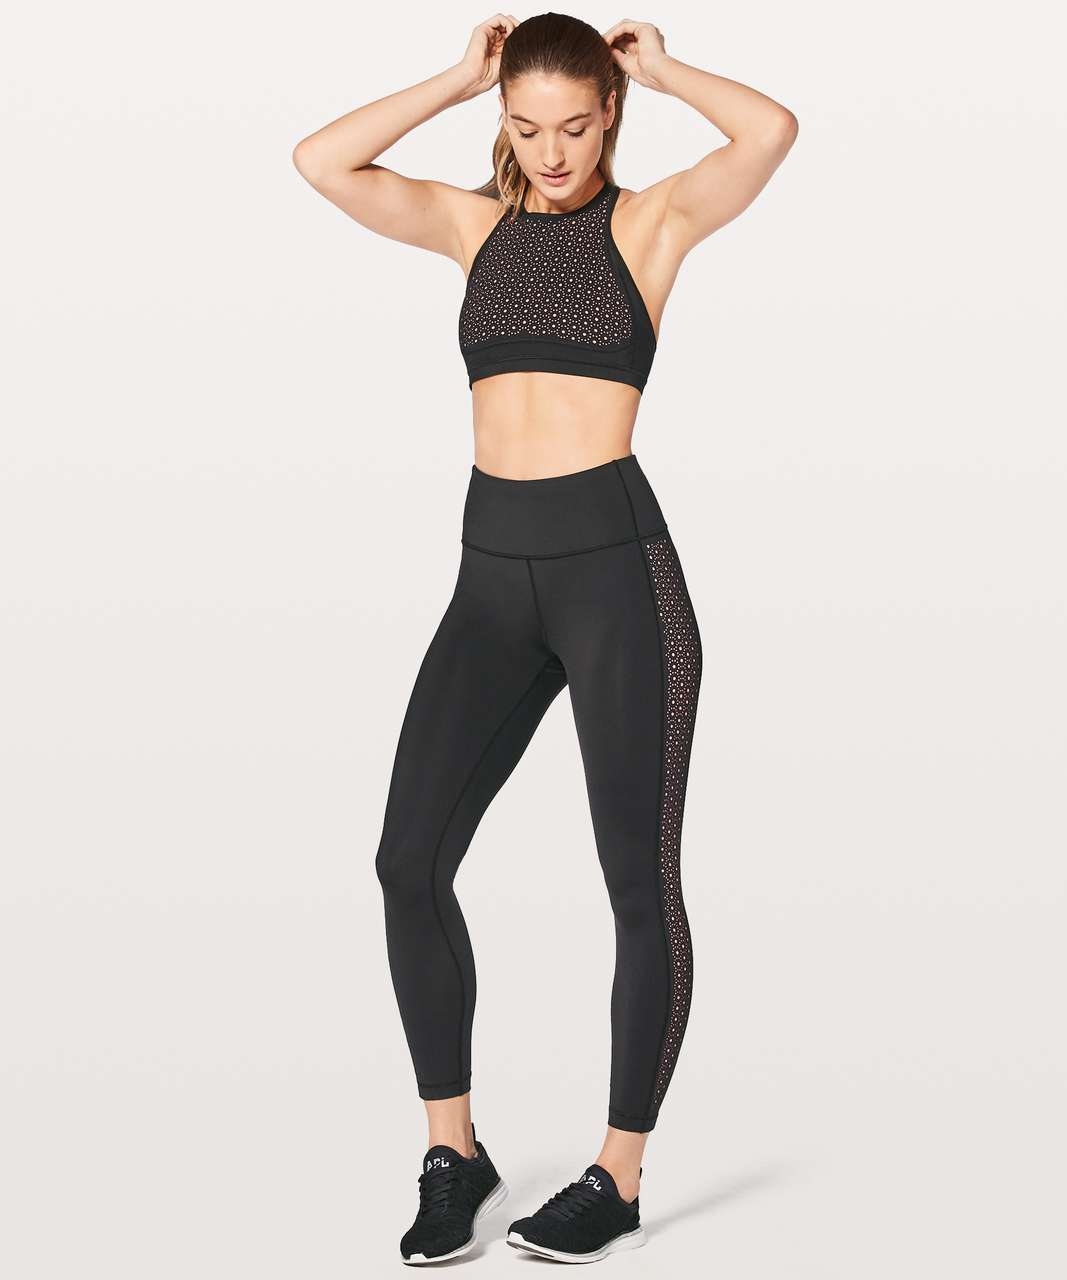 "Lululemon Colour Me Quick 7/8 Tight 25"" - Black / Flash Light Tone"